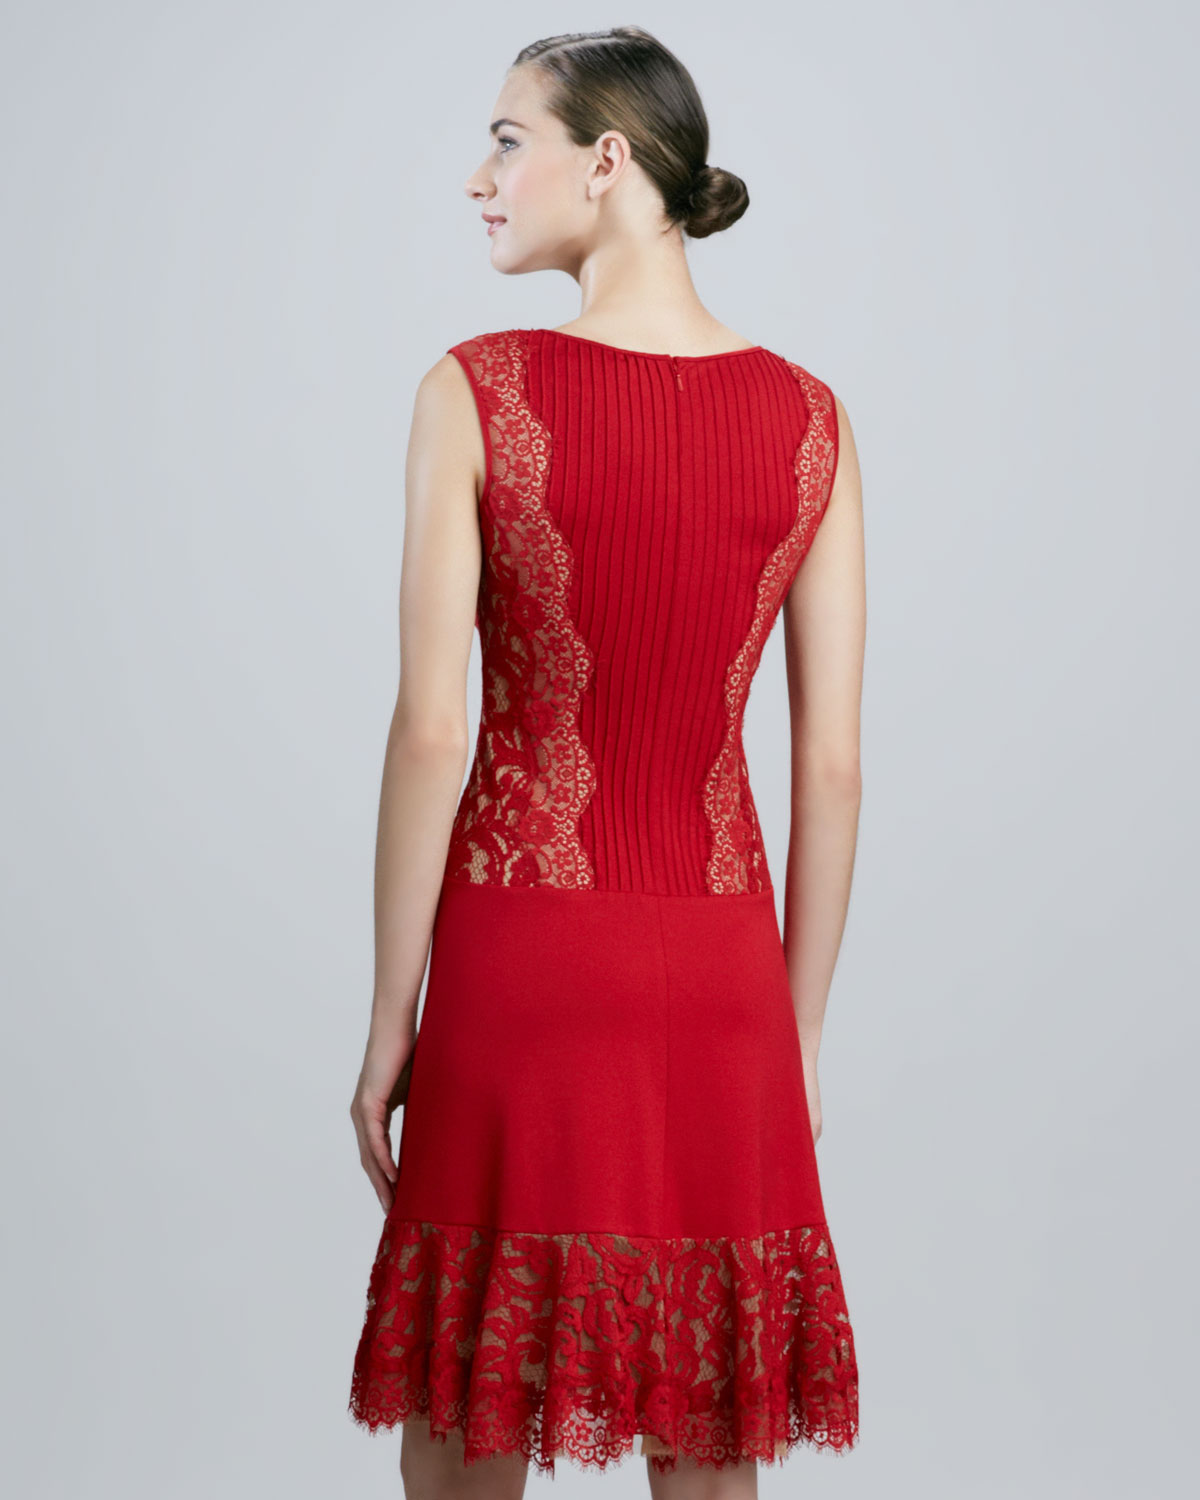 Tadashi shoji Sleeveless Cocktail Dress with Pintucked Bodice in ...